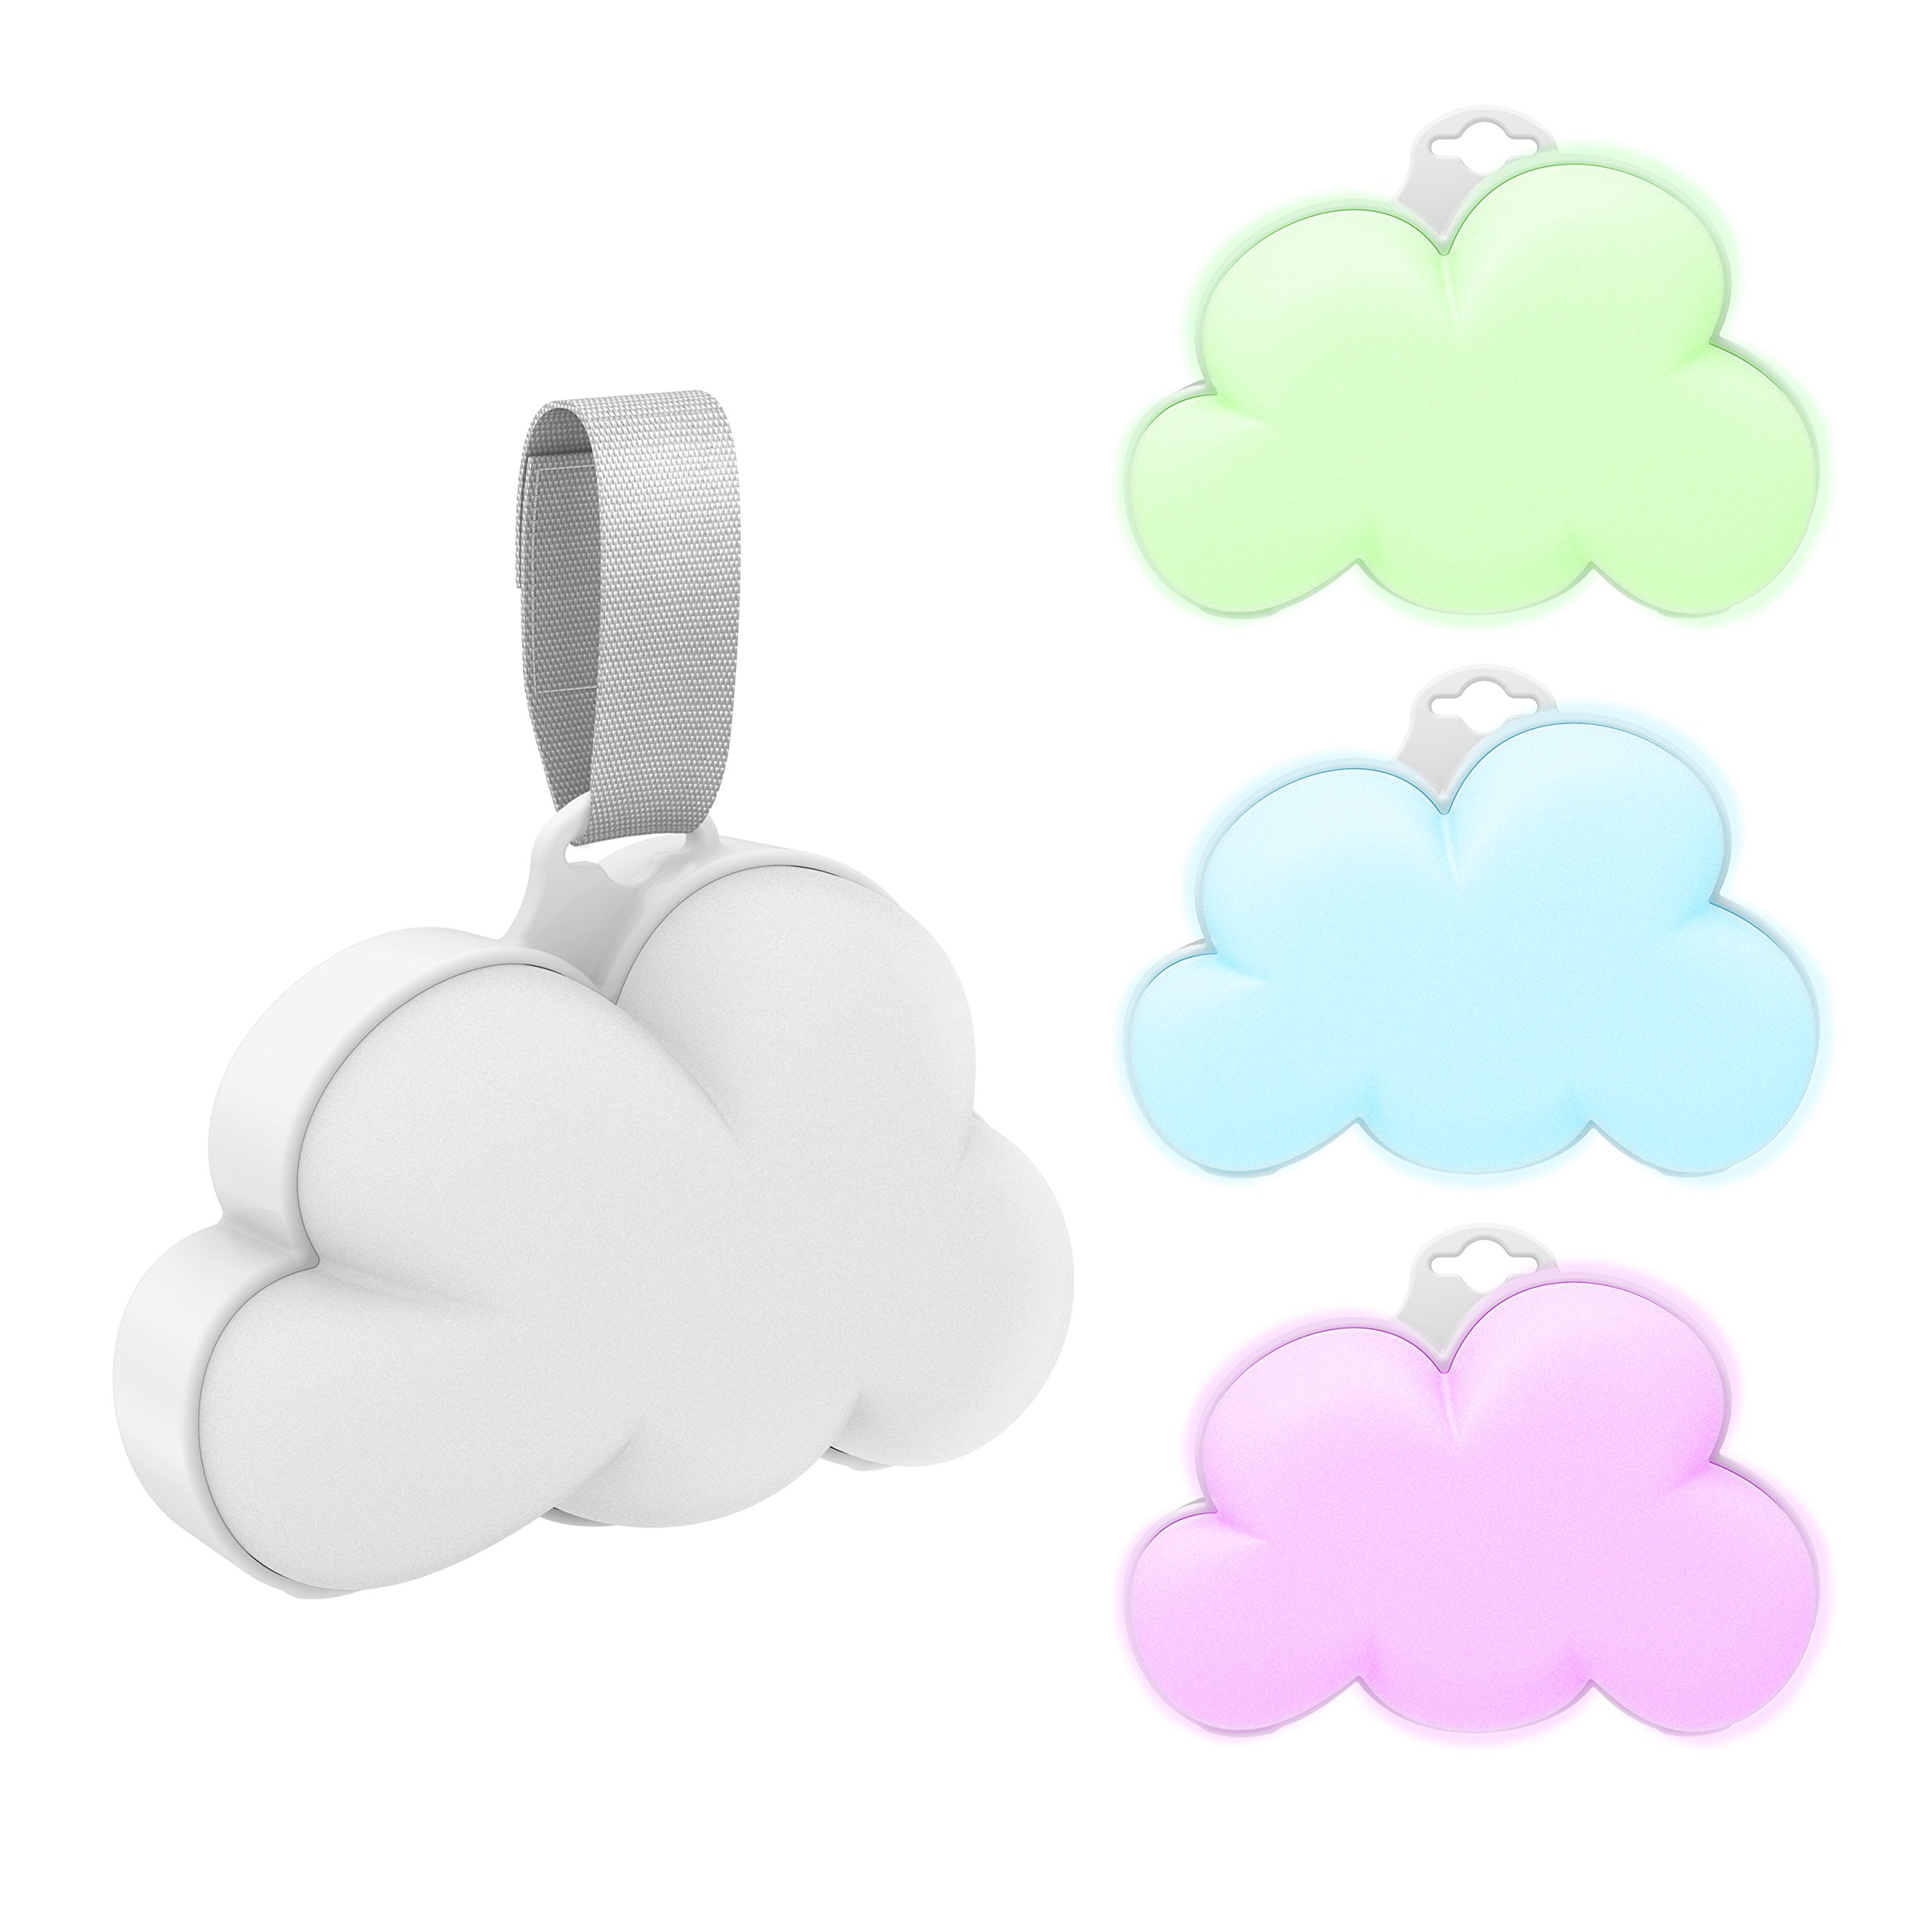 Baby Cloud Portable Sound Machine & Color-Changing Night Light – Plays 15 Soothing Sounds Including 5 Nature Sounds and 10 Lullabies to Create a Relaxing Ambiance for Your Baby